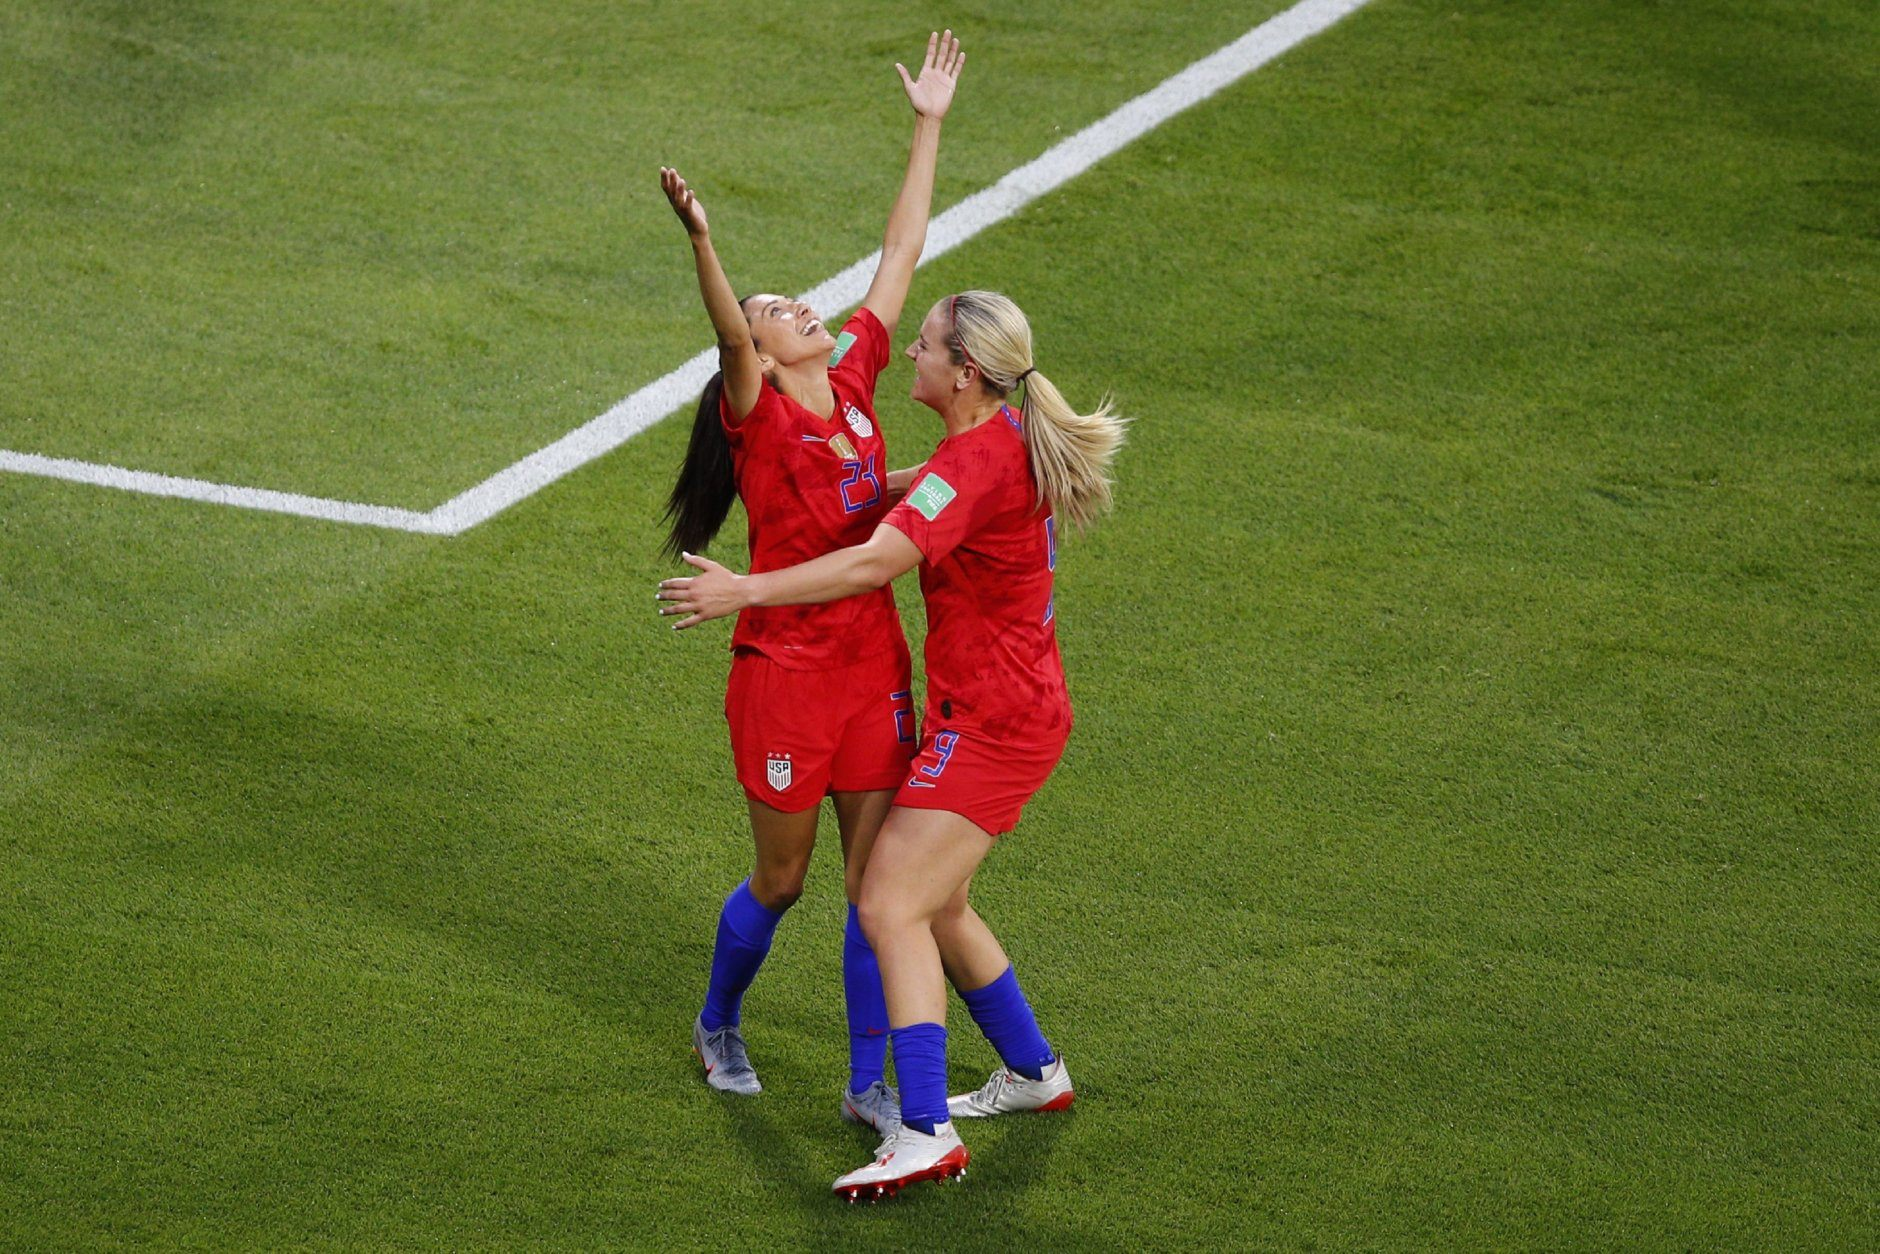 United States' Christen Press, left, reacts after scoring the opening goal of her team during the Women's World Cup semifinal soccer match between England and the United States, at the Stade de Lyon outside Lyon, France, Tuesday, July 2, 2019. (AP Photo/Francois Mori)